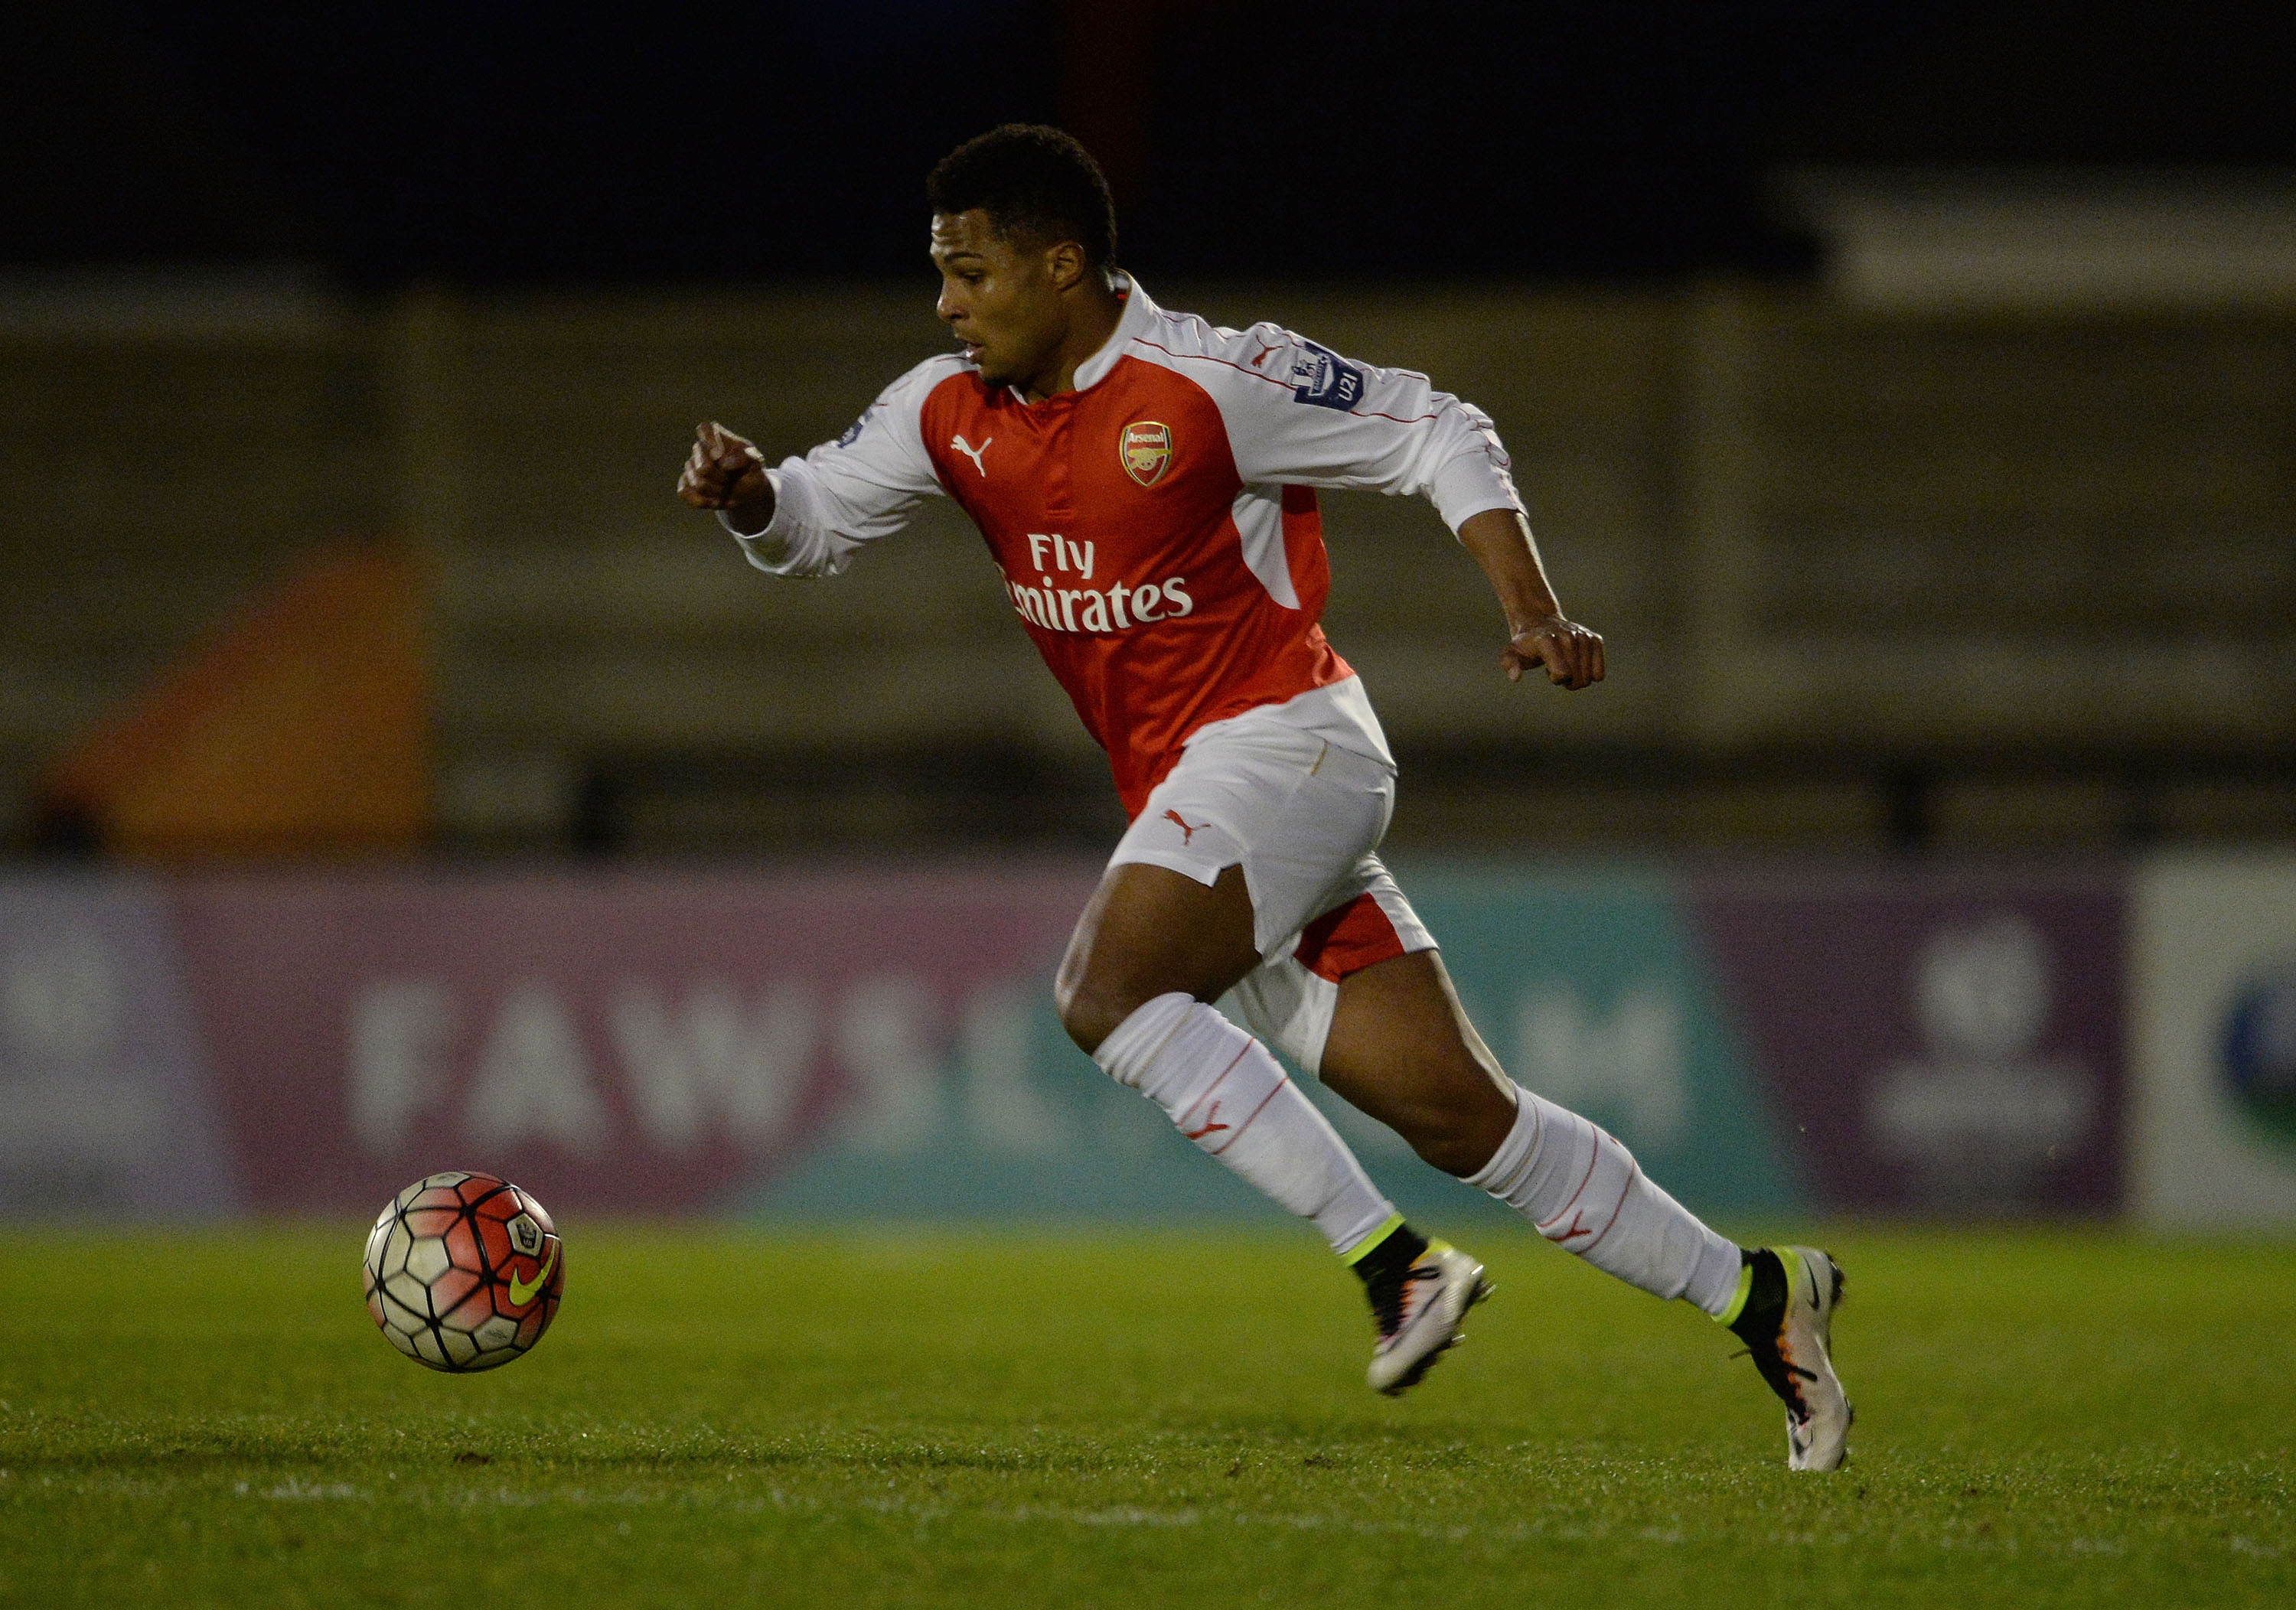 Arsenal: Gnabry And Campbell Departures Confusing